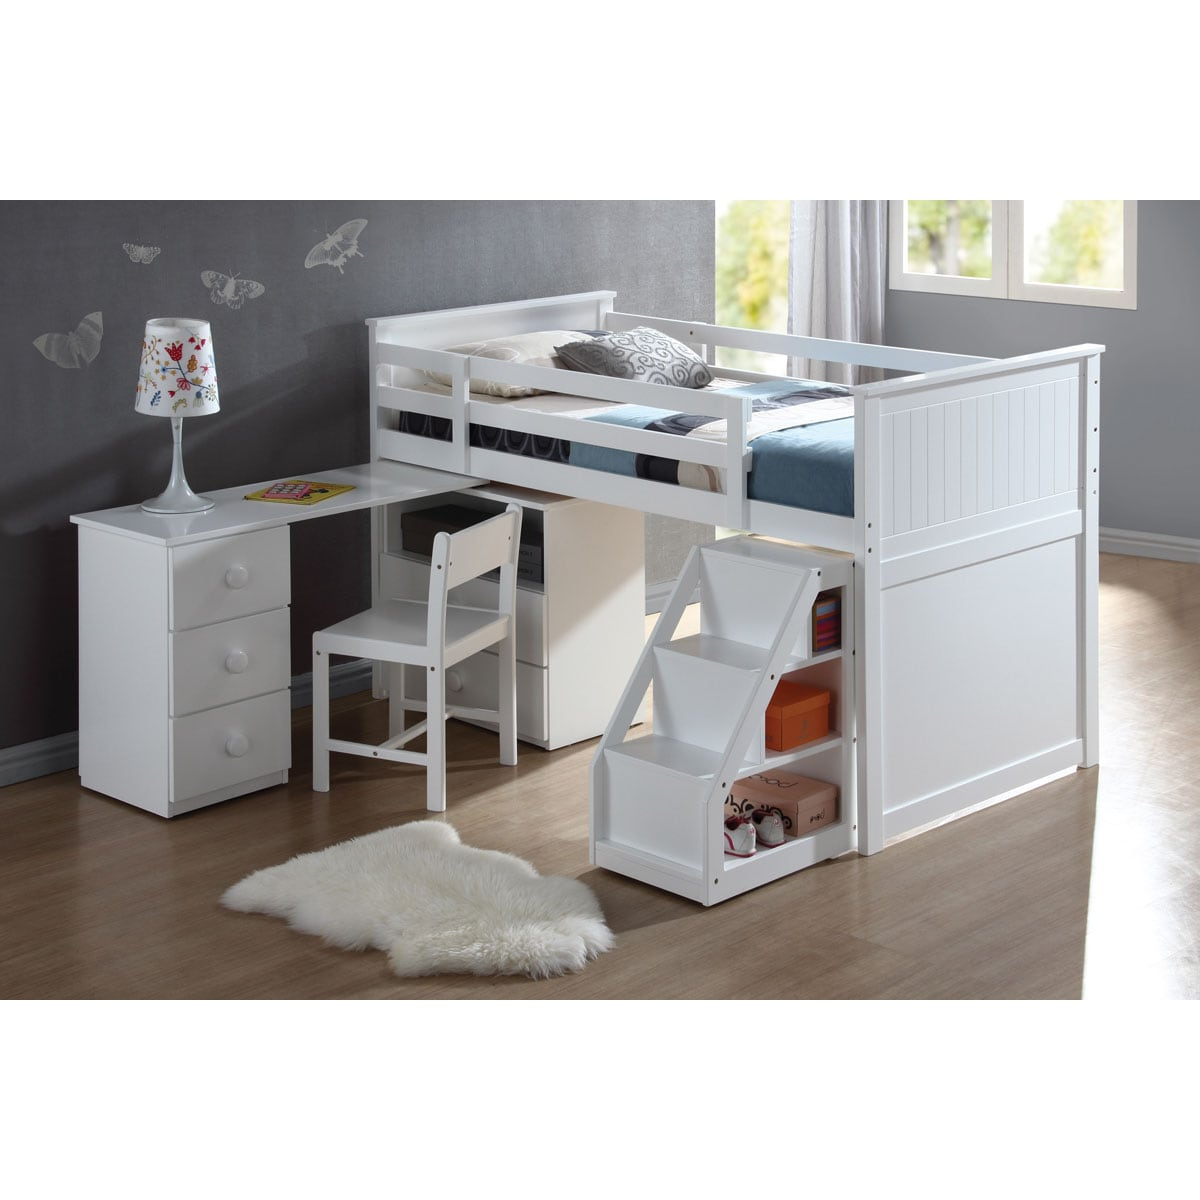 Wyatt White Finish Twin Loft Bed 14341966 Overstock